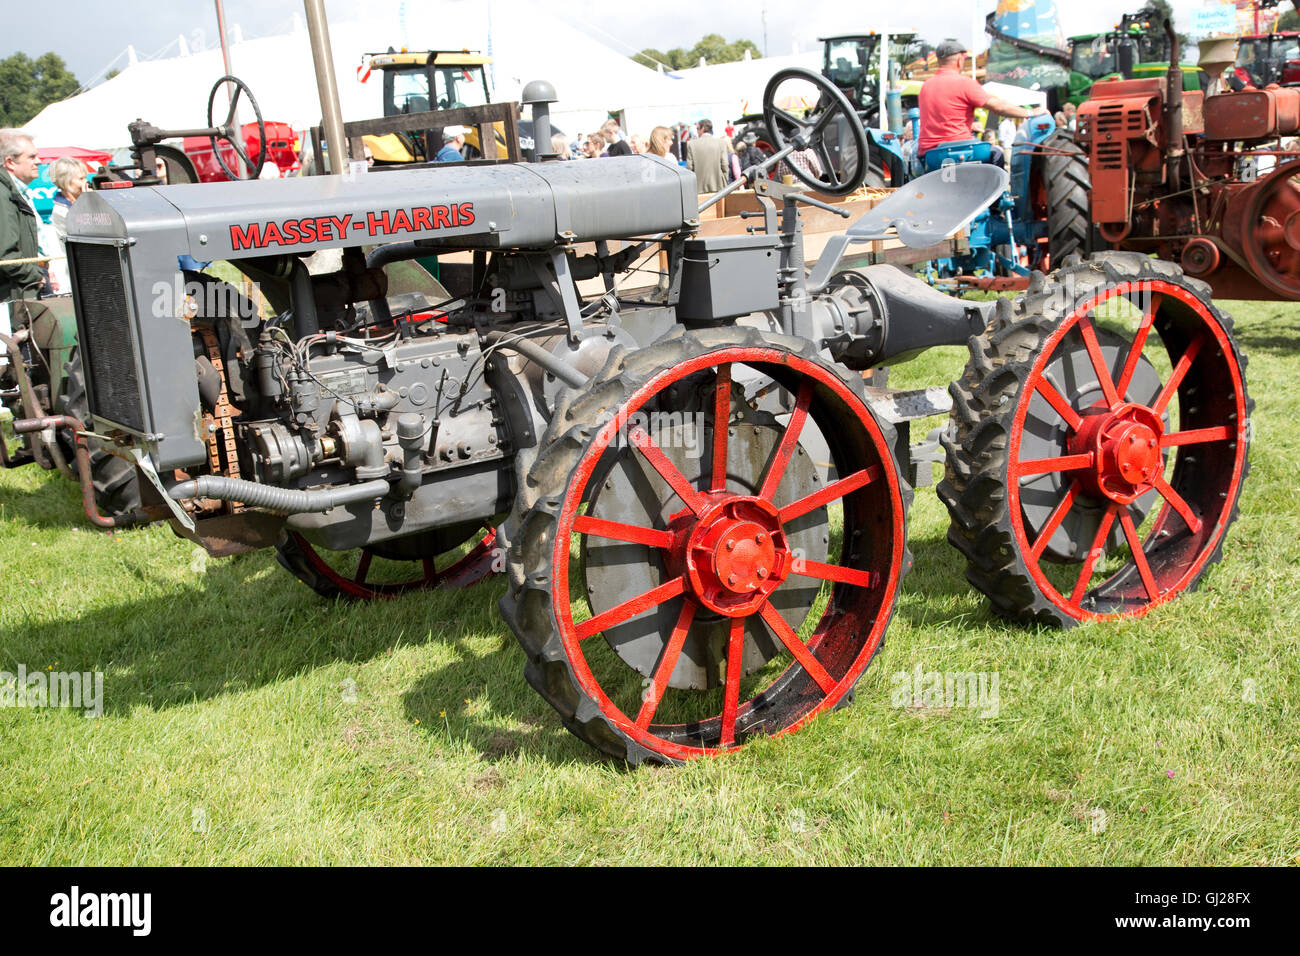 Vintage Front Wheel Drive Tractors : Massey harris gp early wheel drive vintage tractor